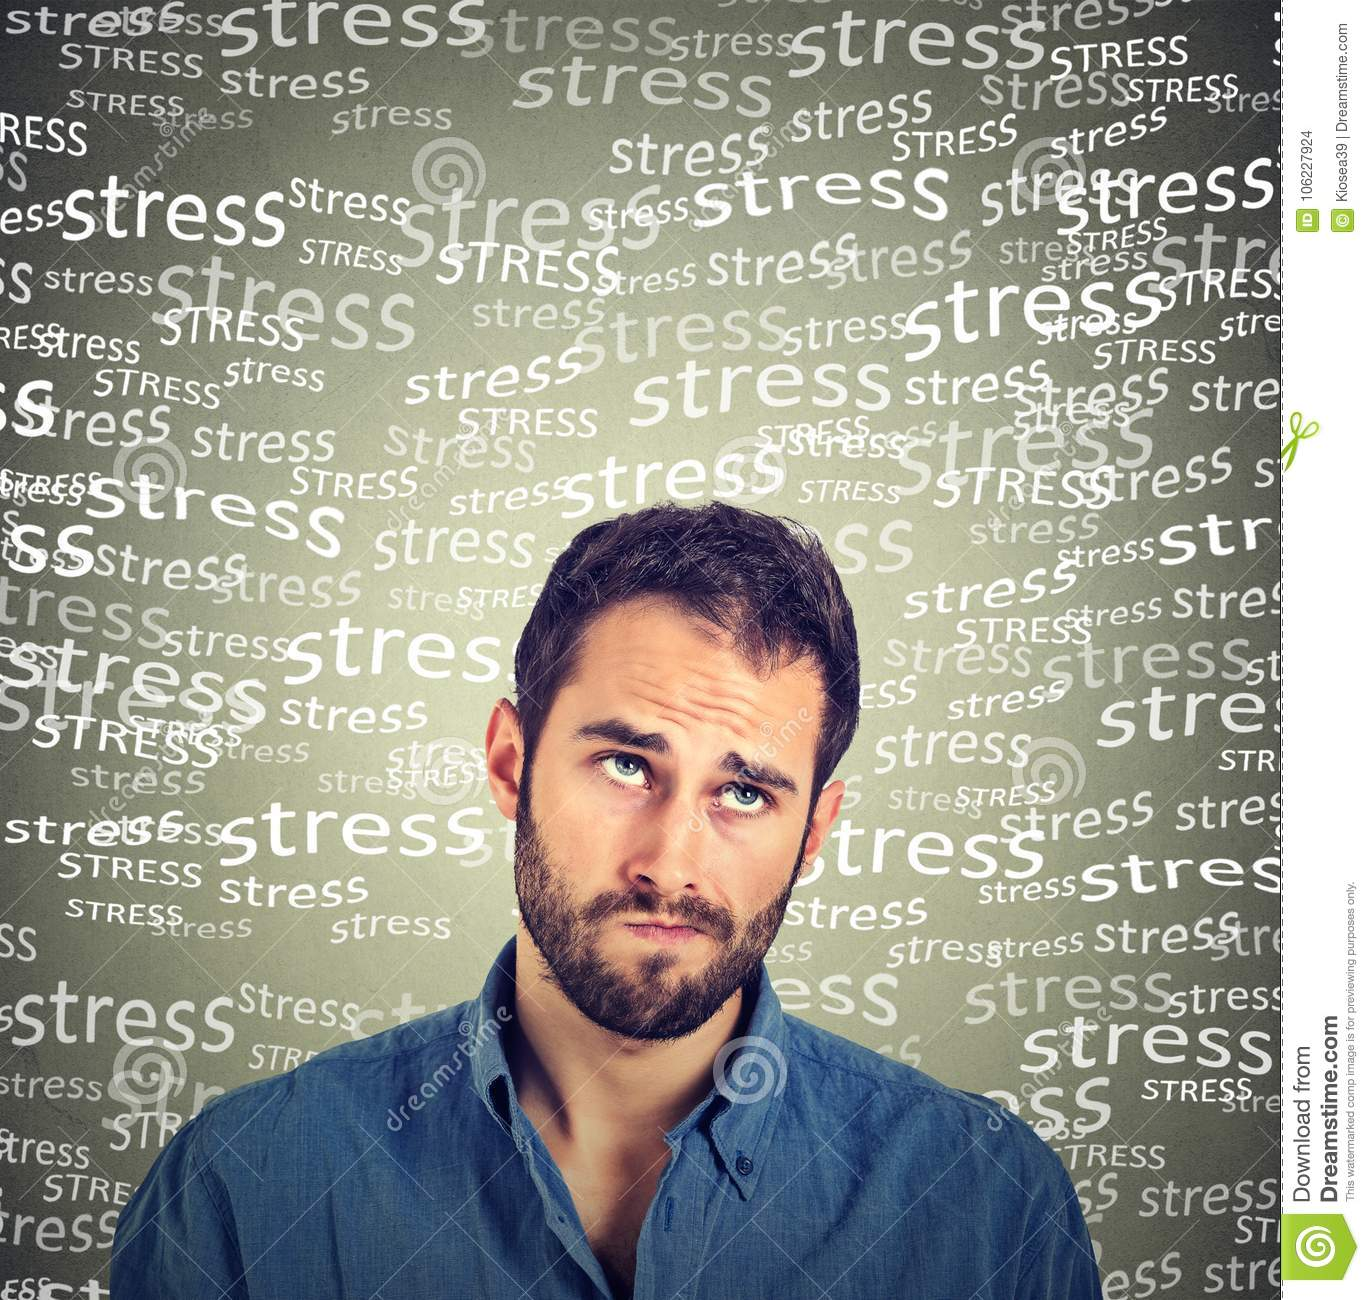 Confused skeptical young man thinking looking up under stress pressure